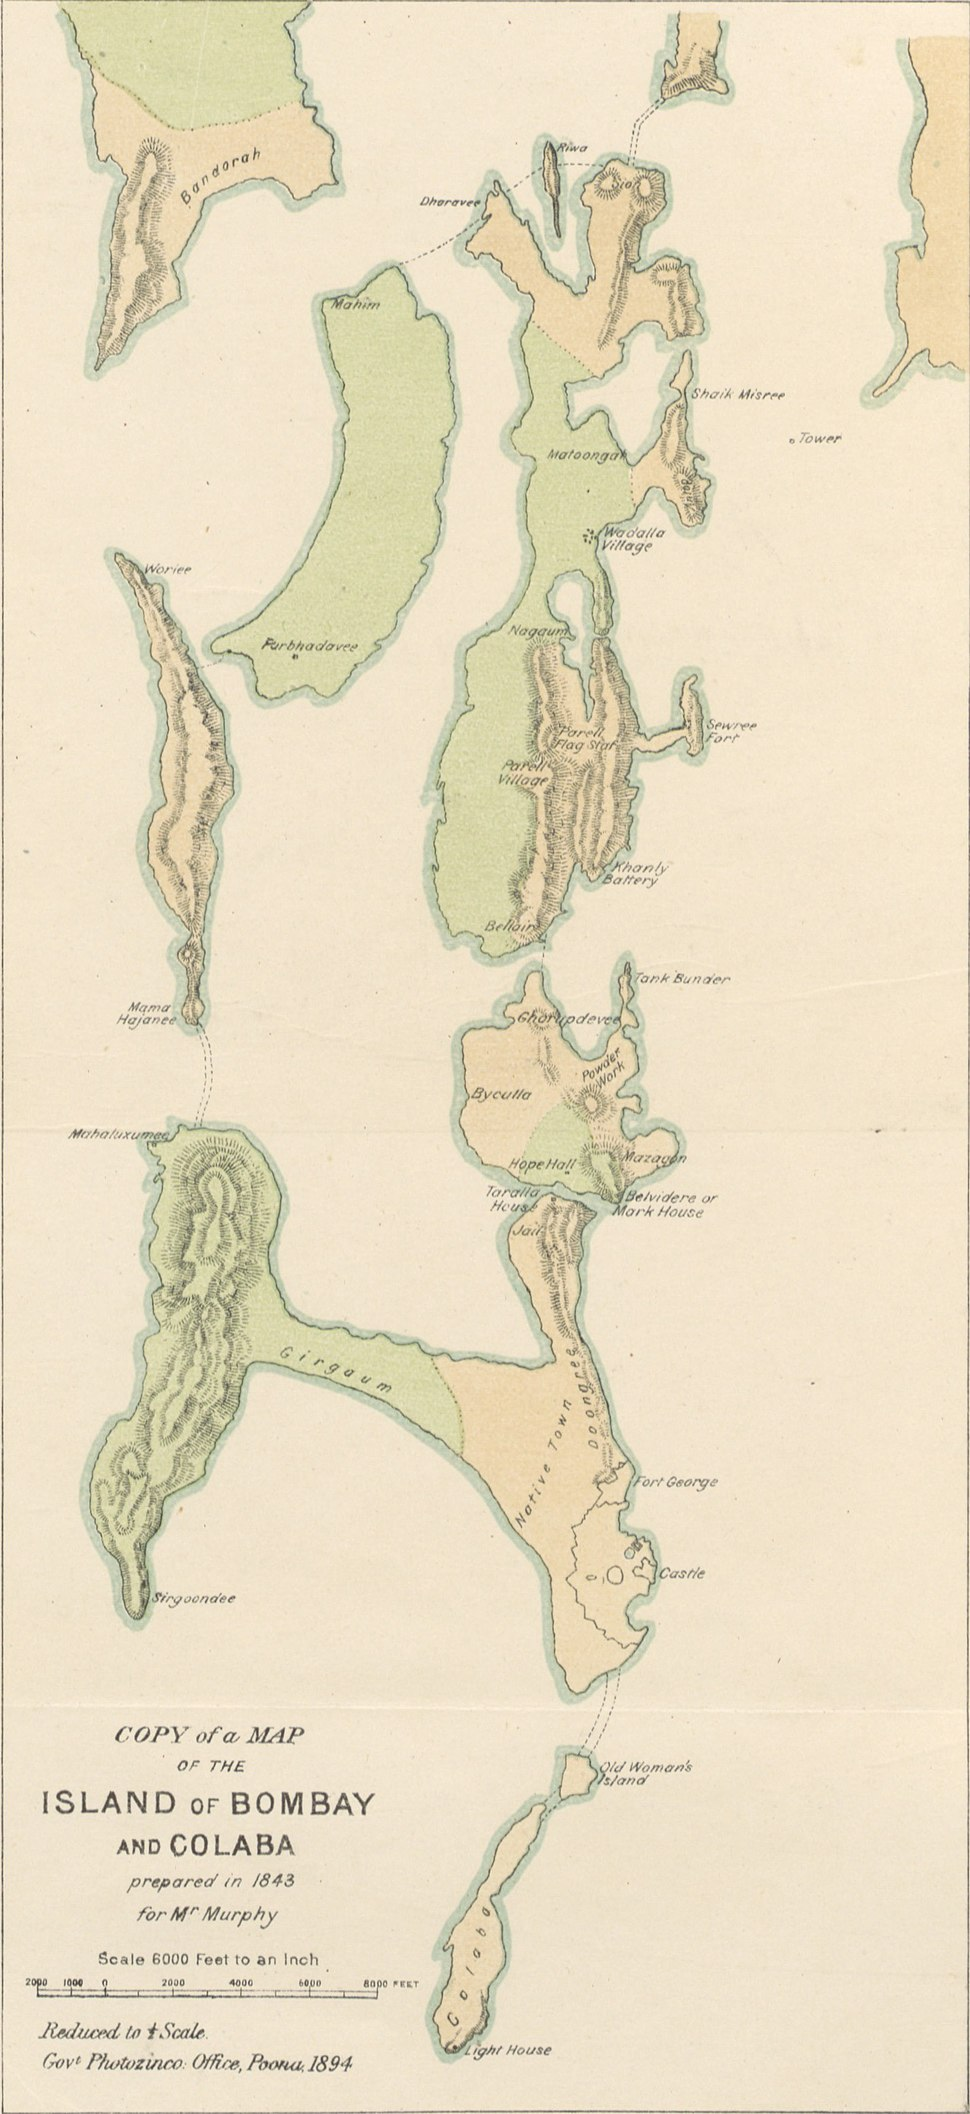 Islands of Bombay and Colaba